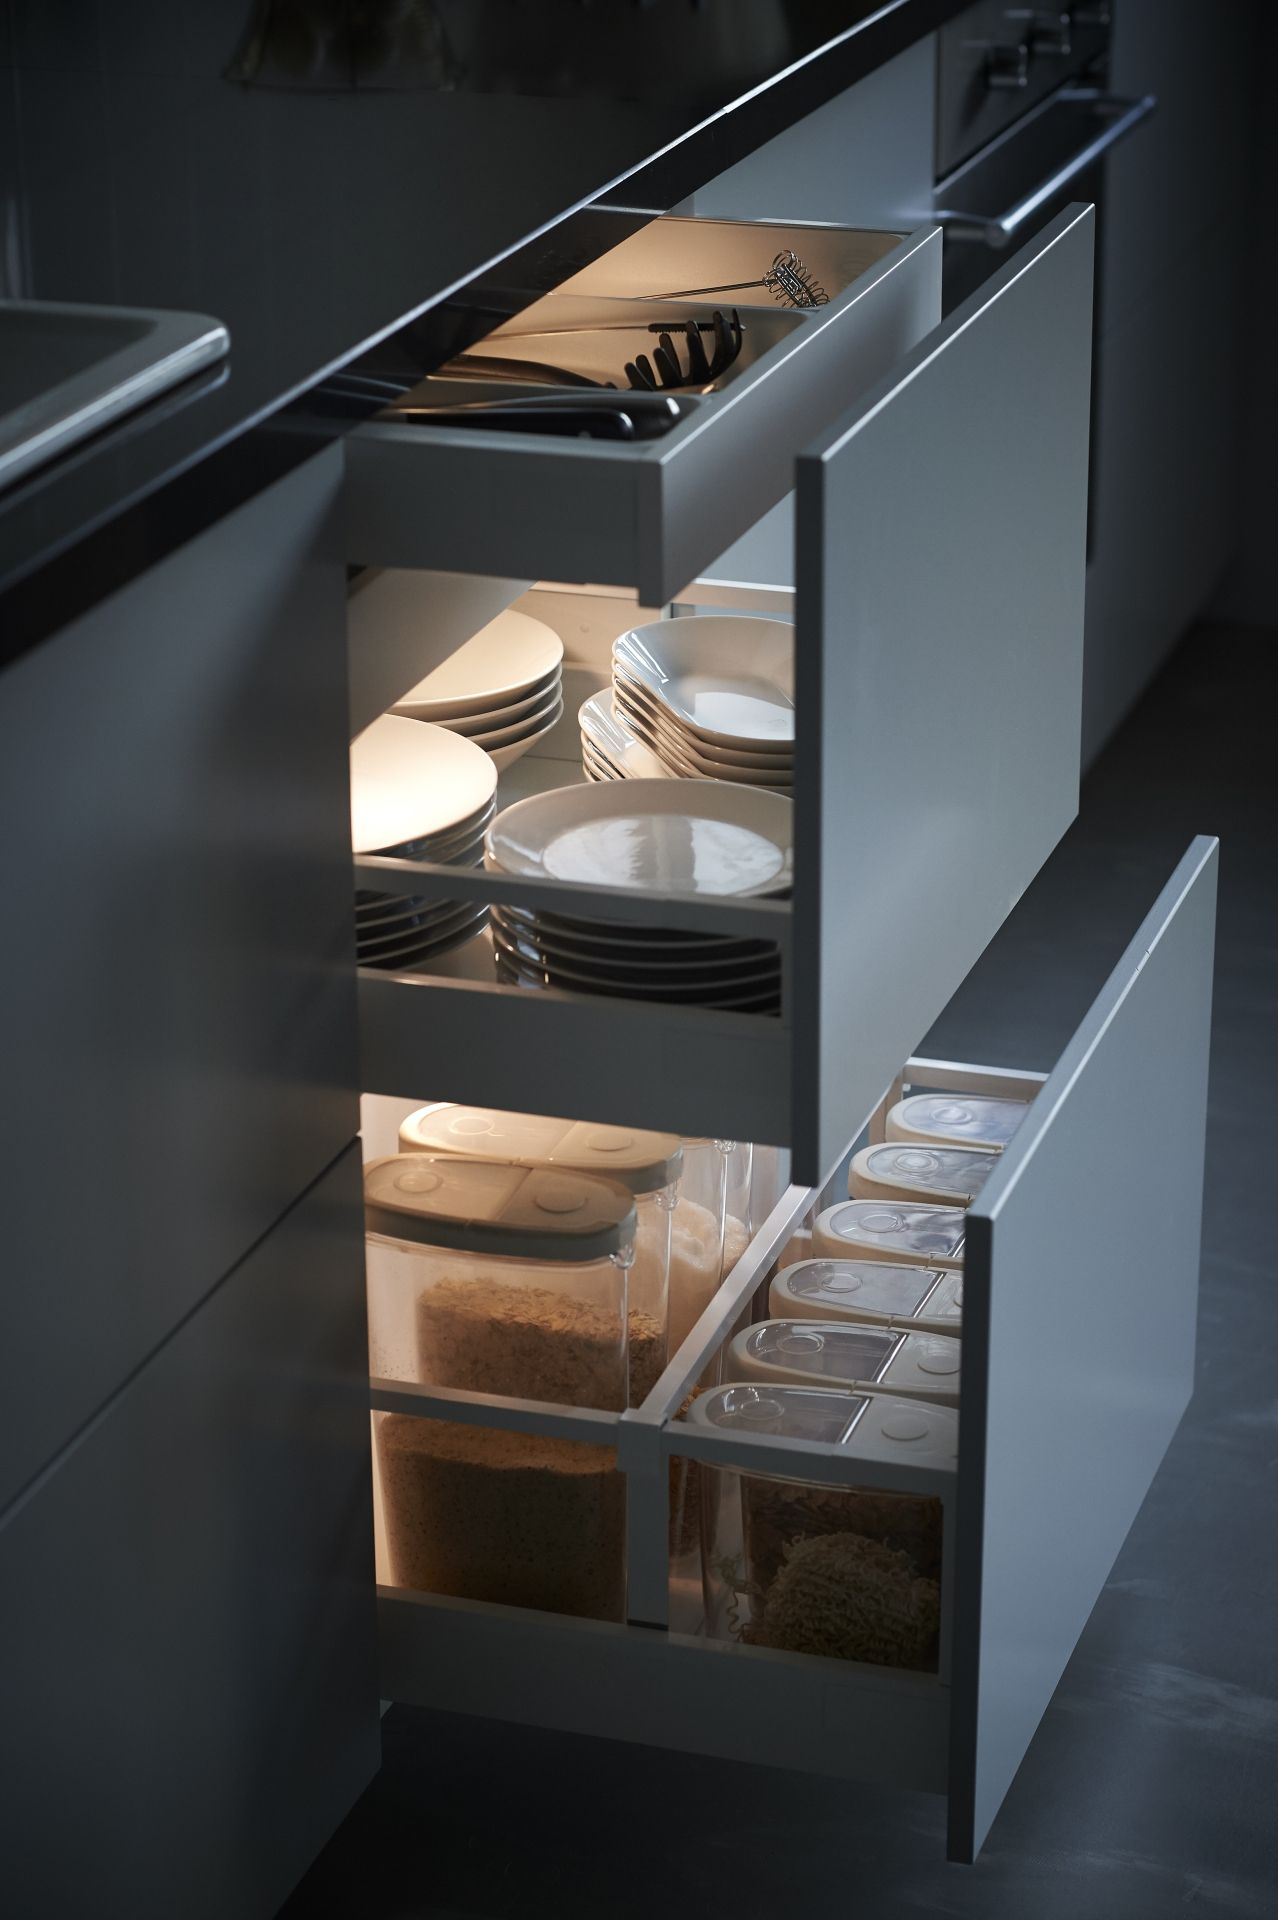 Omlopp Led Strip Voor Lade Aluminiumkleur Kitchen Pinterest